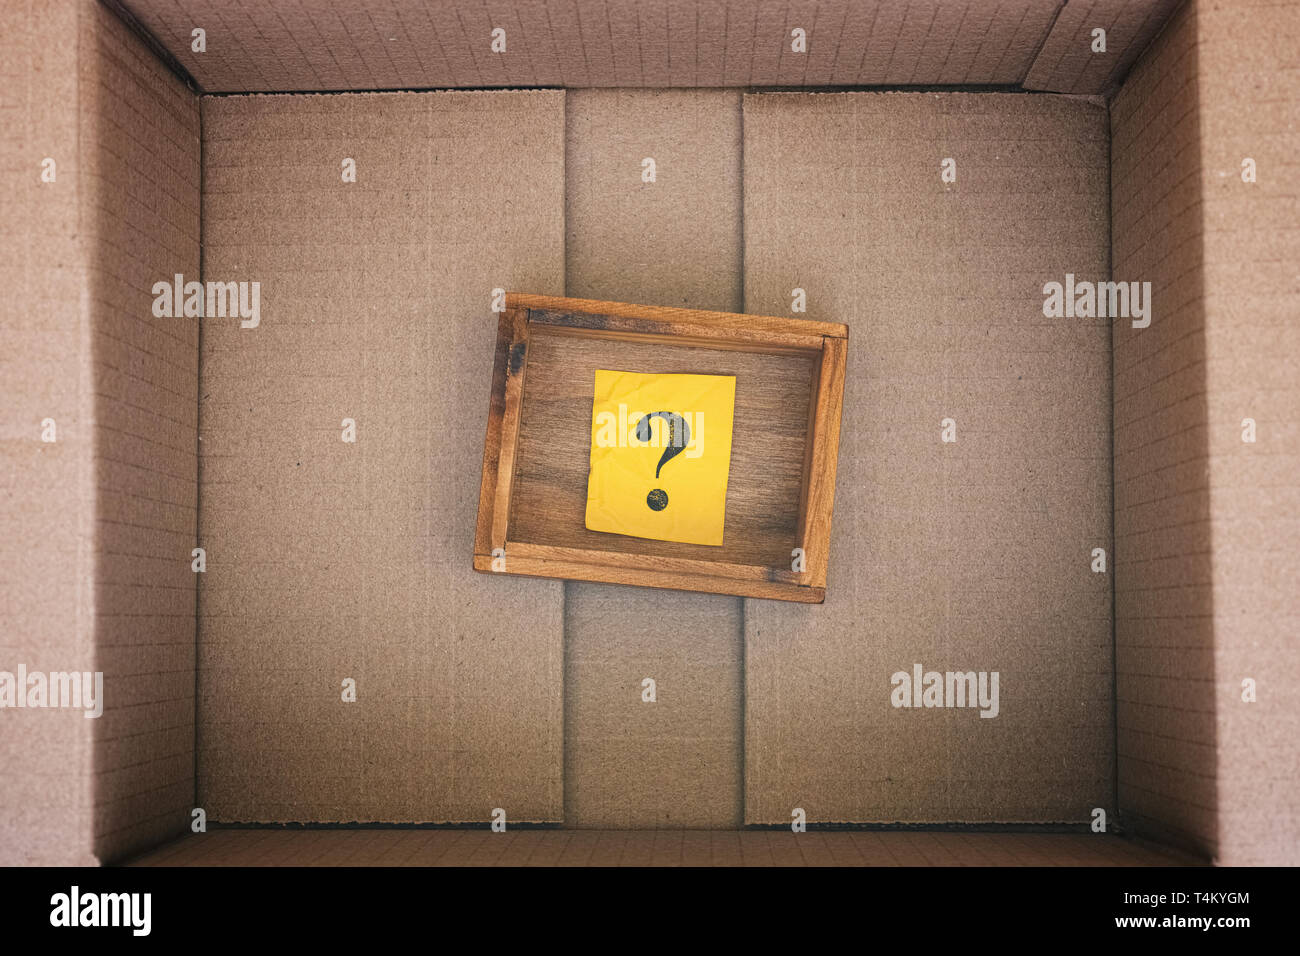 Wooden box with question mark inside cardboard box. Concept image. Close up. - Stock Image